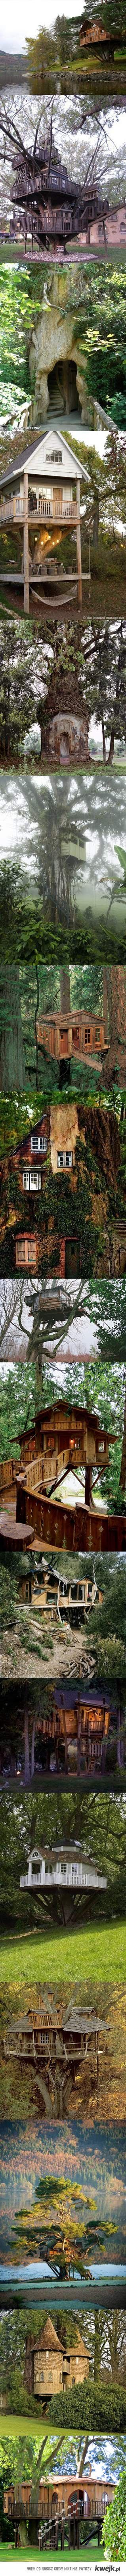 The Most EPIC TREEHOUSE's Ever!